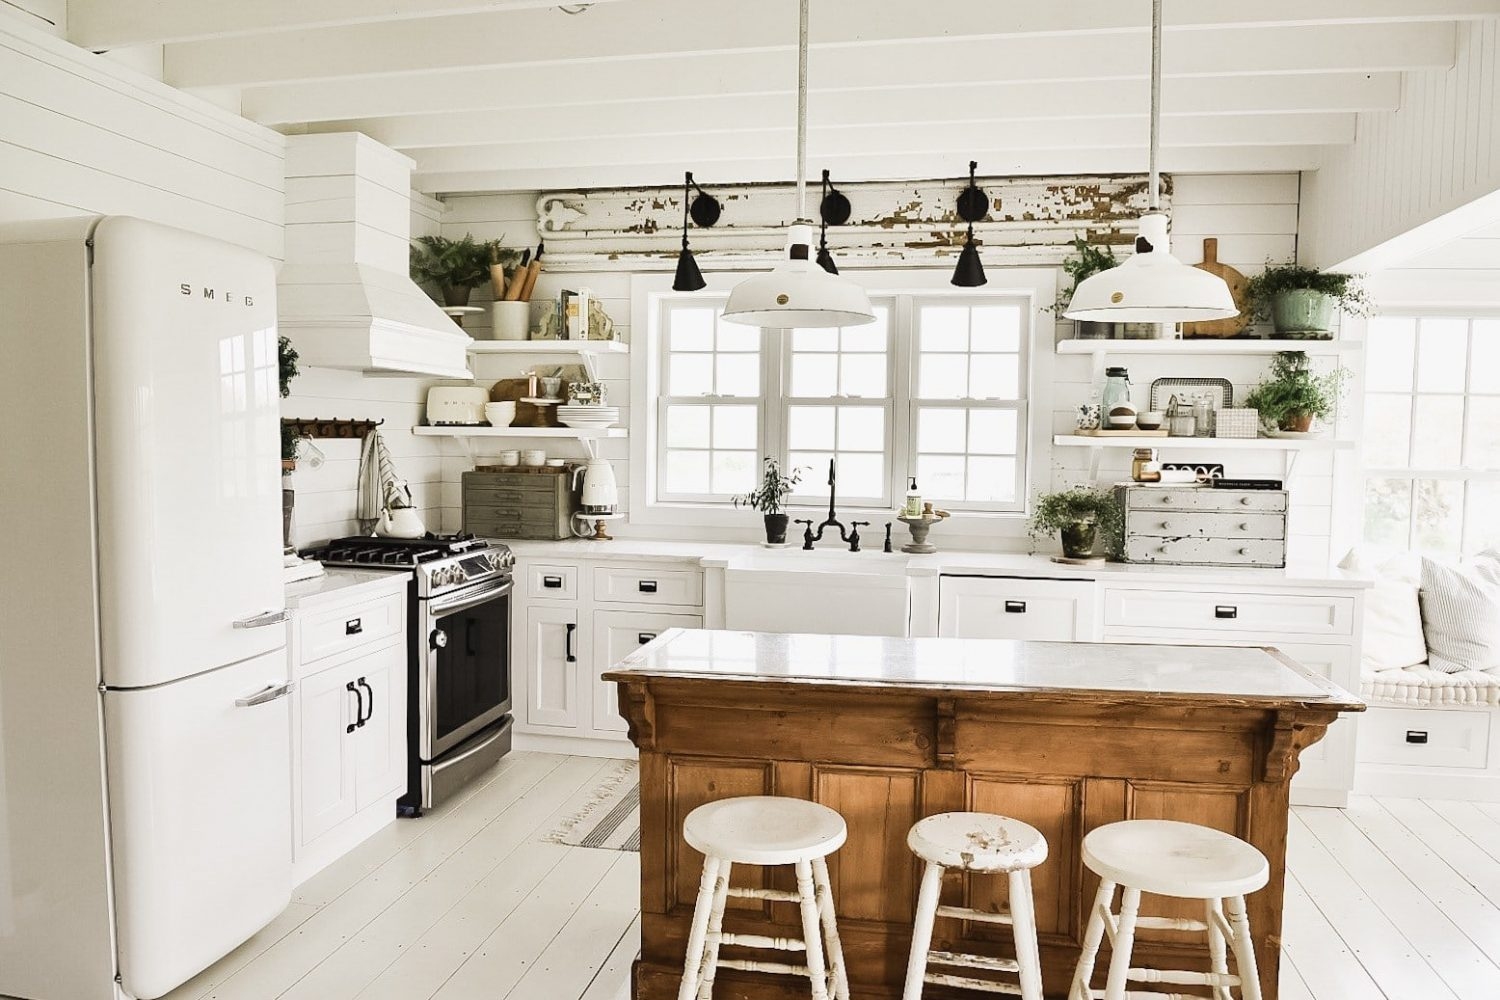 Liz Marie Blog kitchen: rustic antique wood island amidst white cabinetry- Maison de Pax